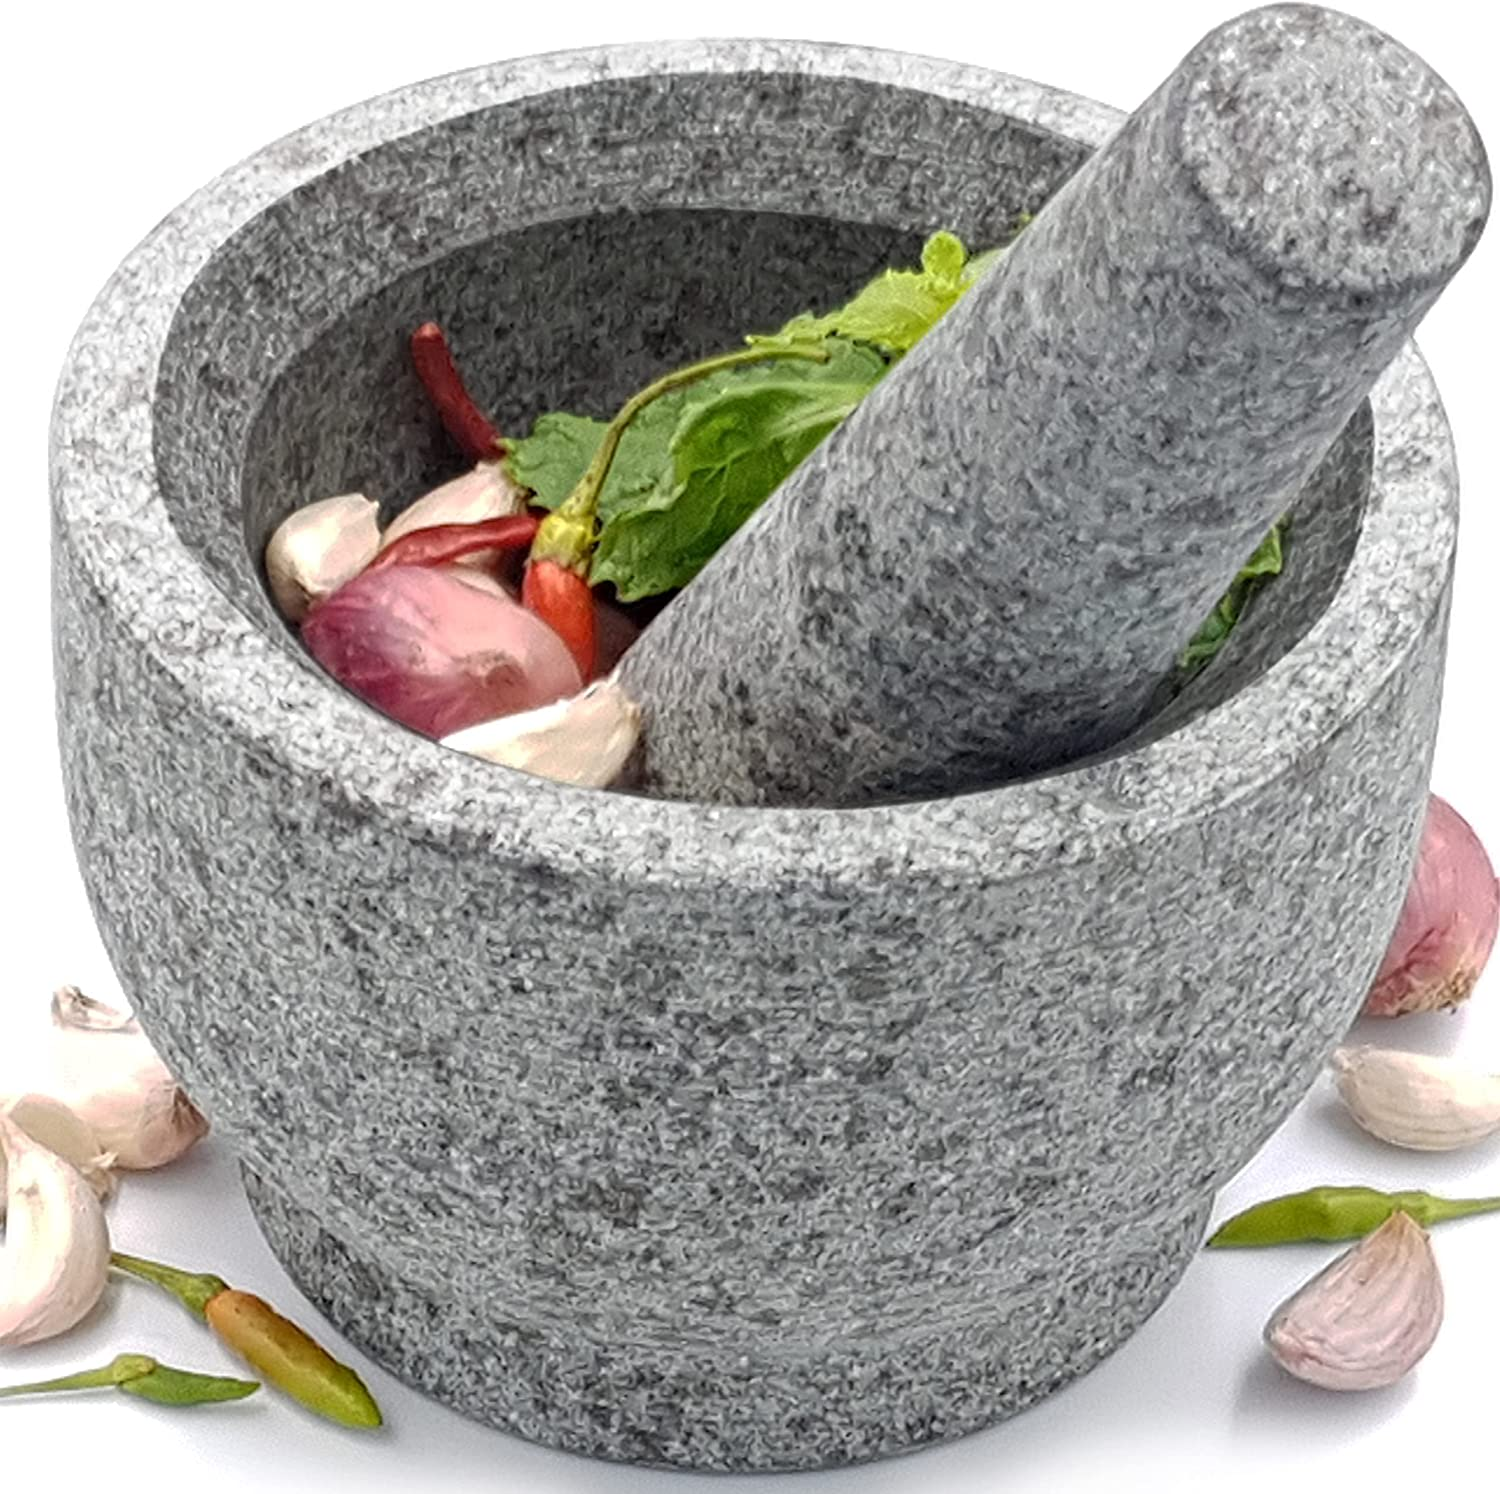 Granite Mortar and Pestle Set – Molcajete Mexicano Pestle and Mortar Set - Large Guacamole Bowl - Spice Grinder Hand - Unpolished 5.2 Inch Holds 1.75 Cups - Ergonomic Sleek Design - Gray